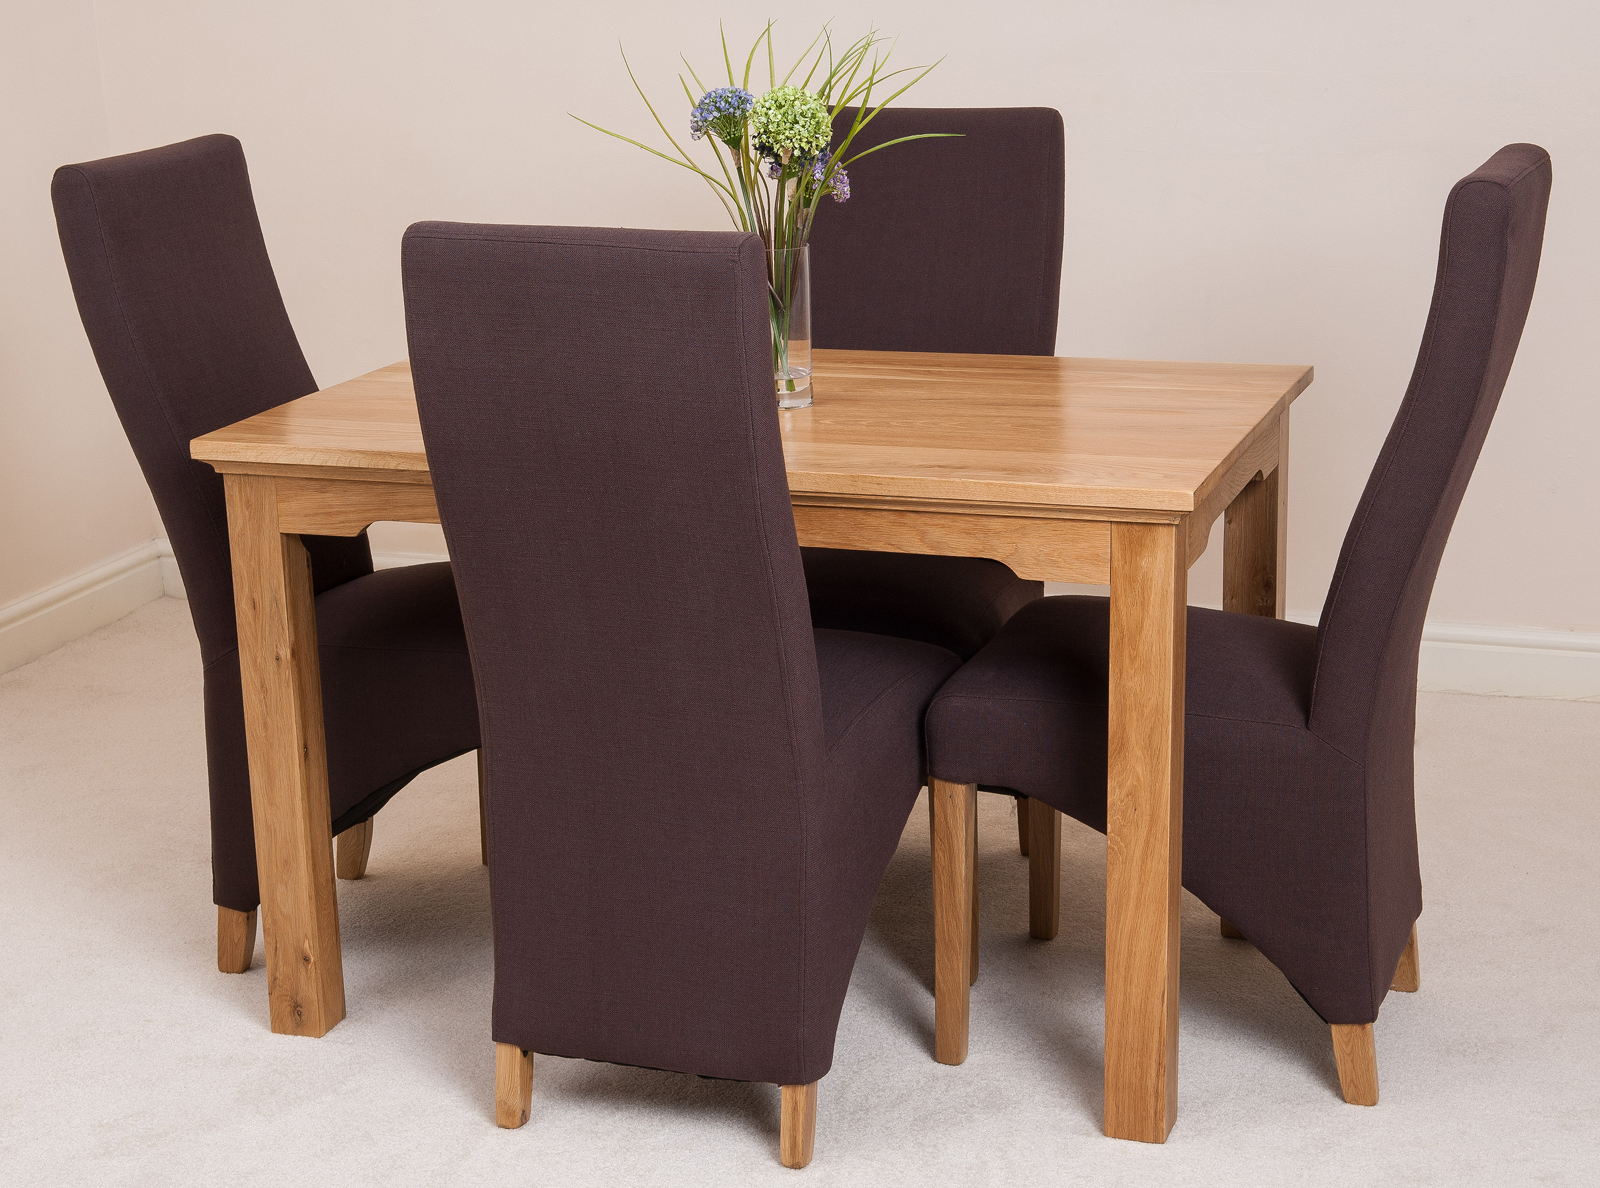 Aspen solid oak 120cm dining table 4 lola fabric curved for 120cm dining table with 4 chairs